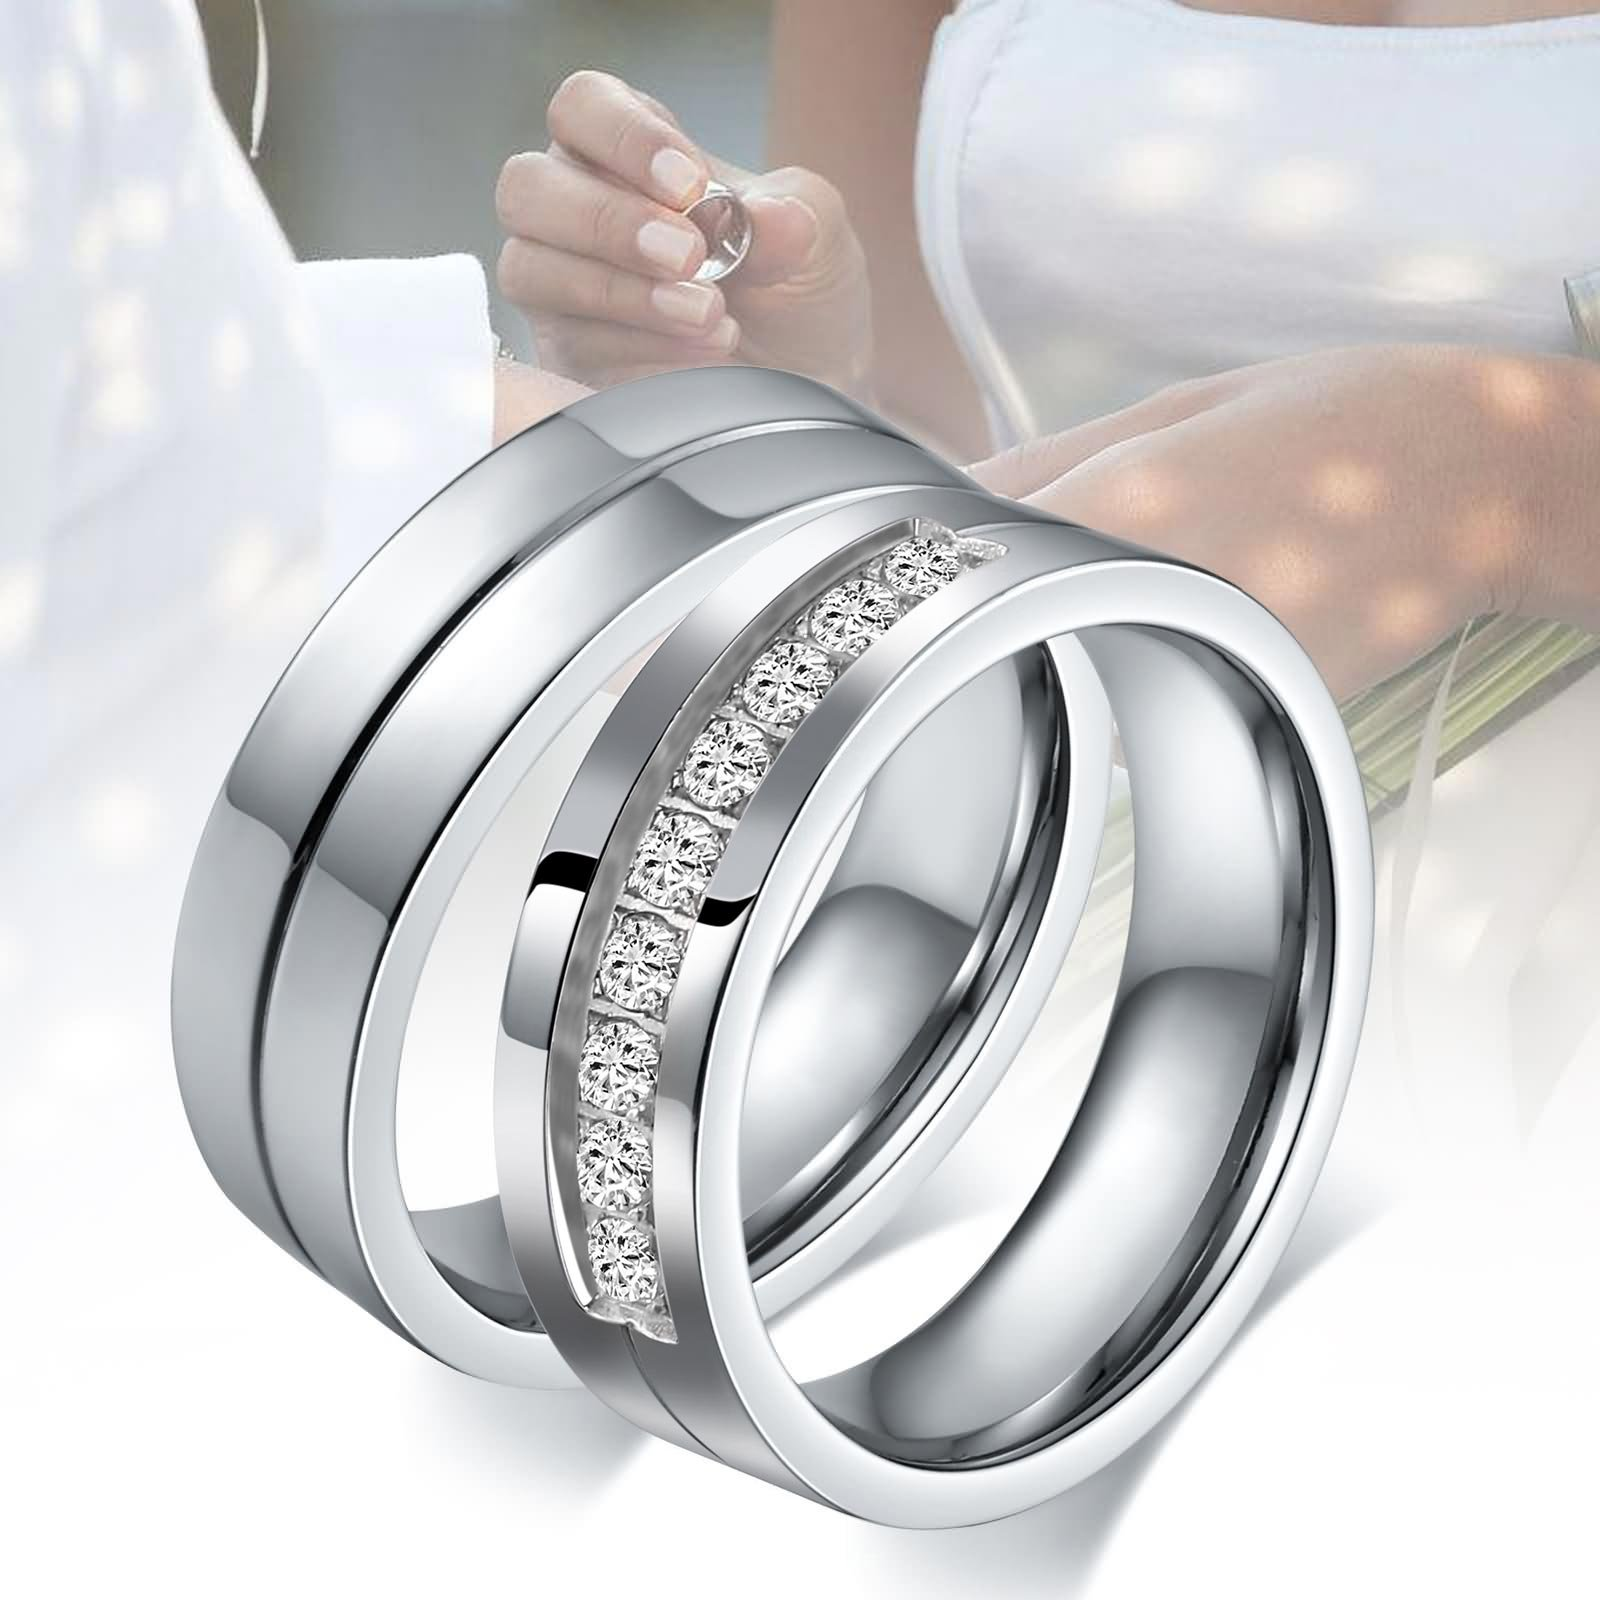 Aeici Stianless Steel Silver ''Forever Love'' Couples Promise Ring Romantic Couples Gift Women Size 9 & 10 by Aeici (Image #6)